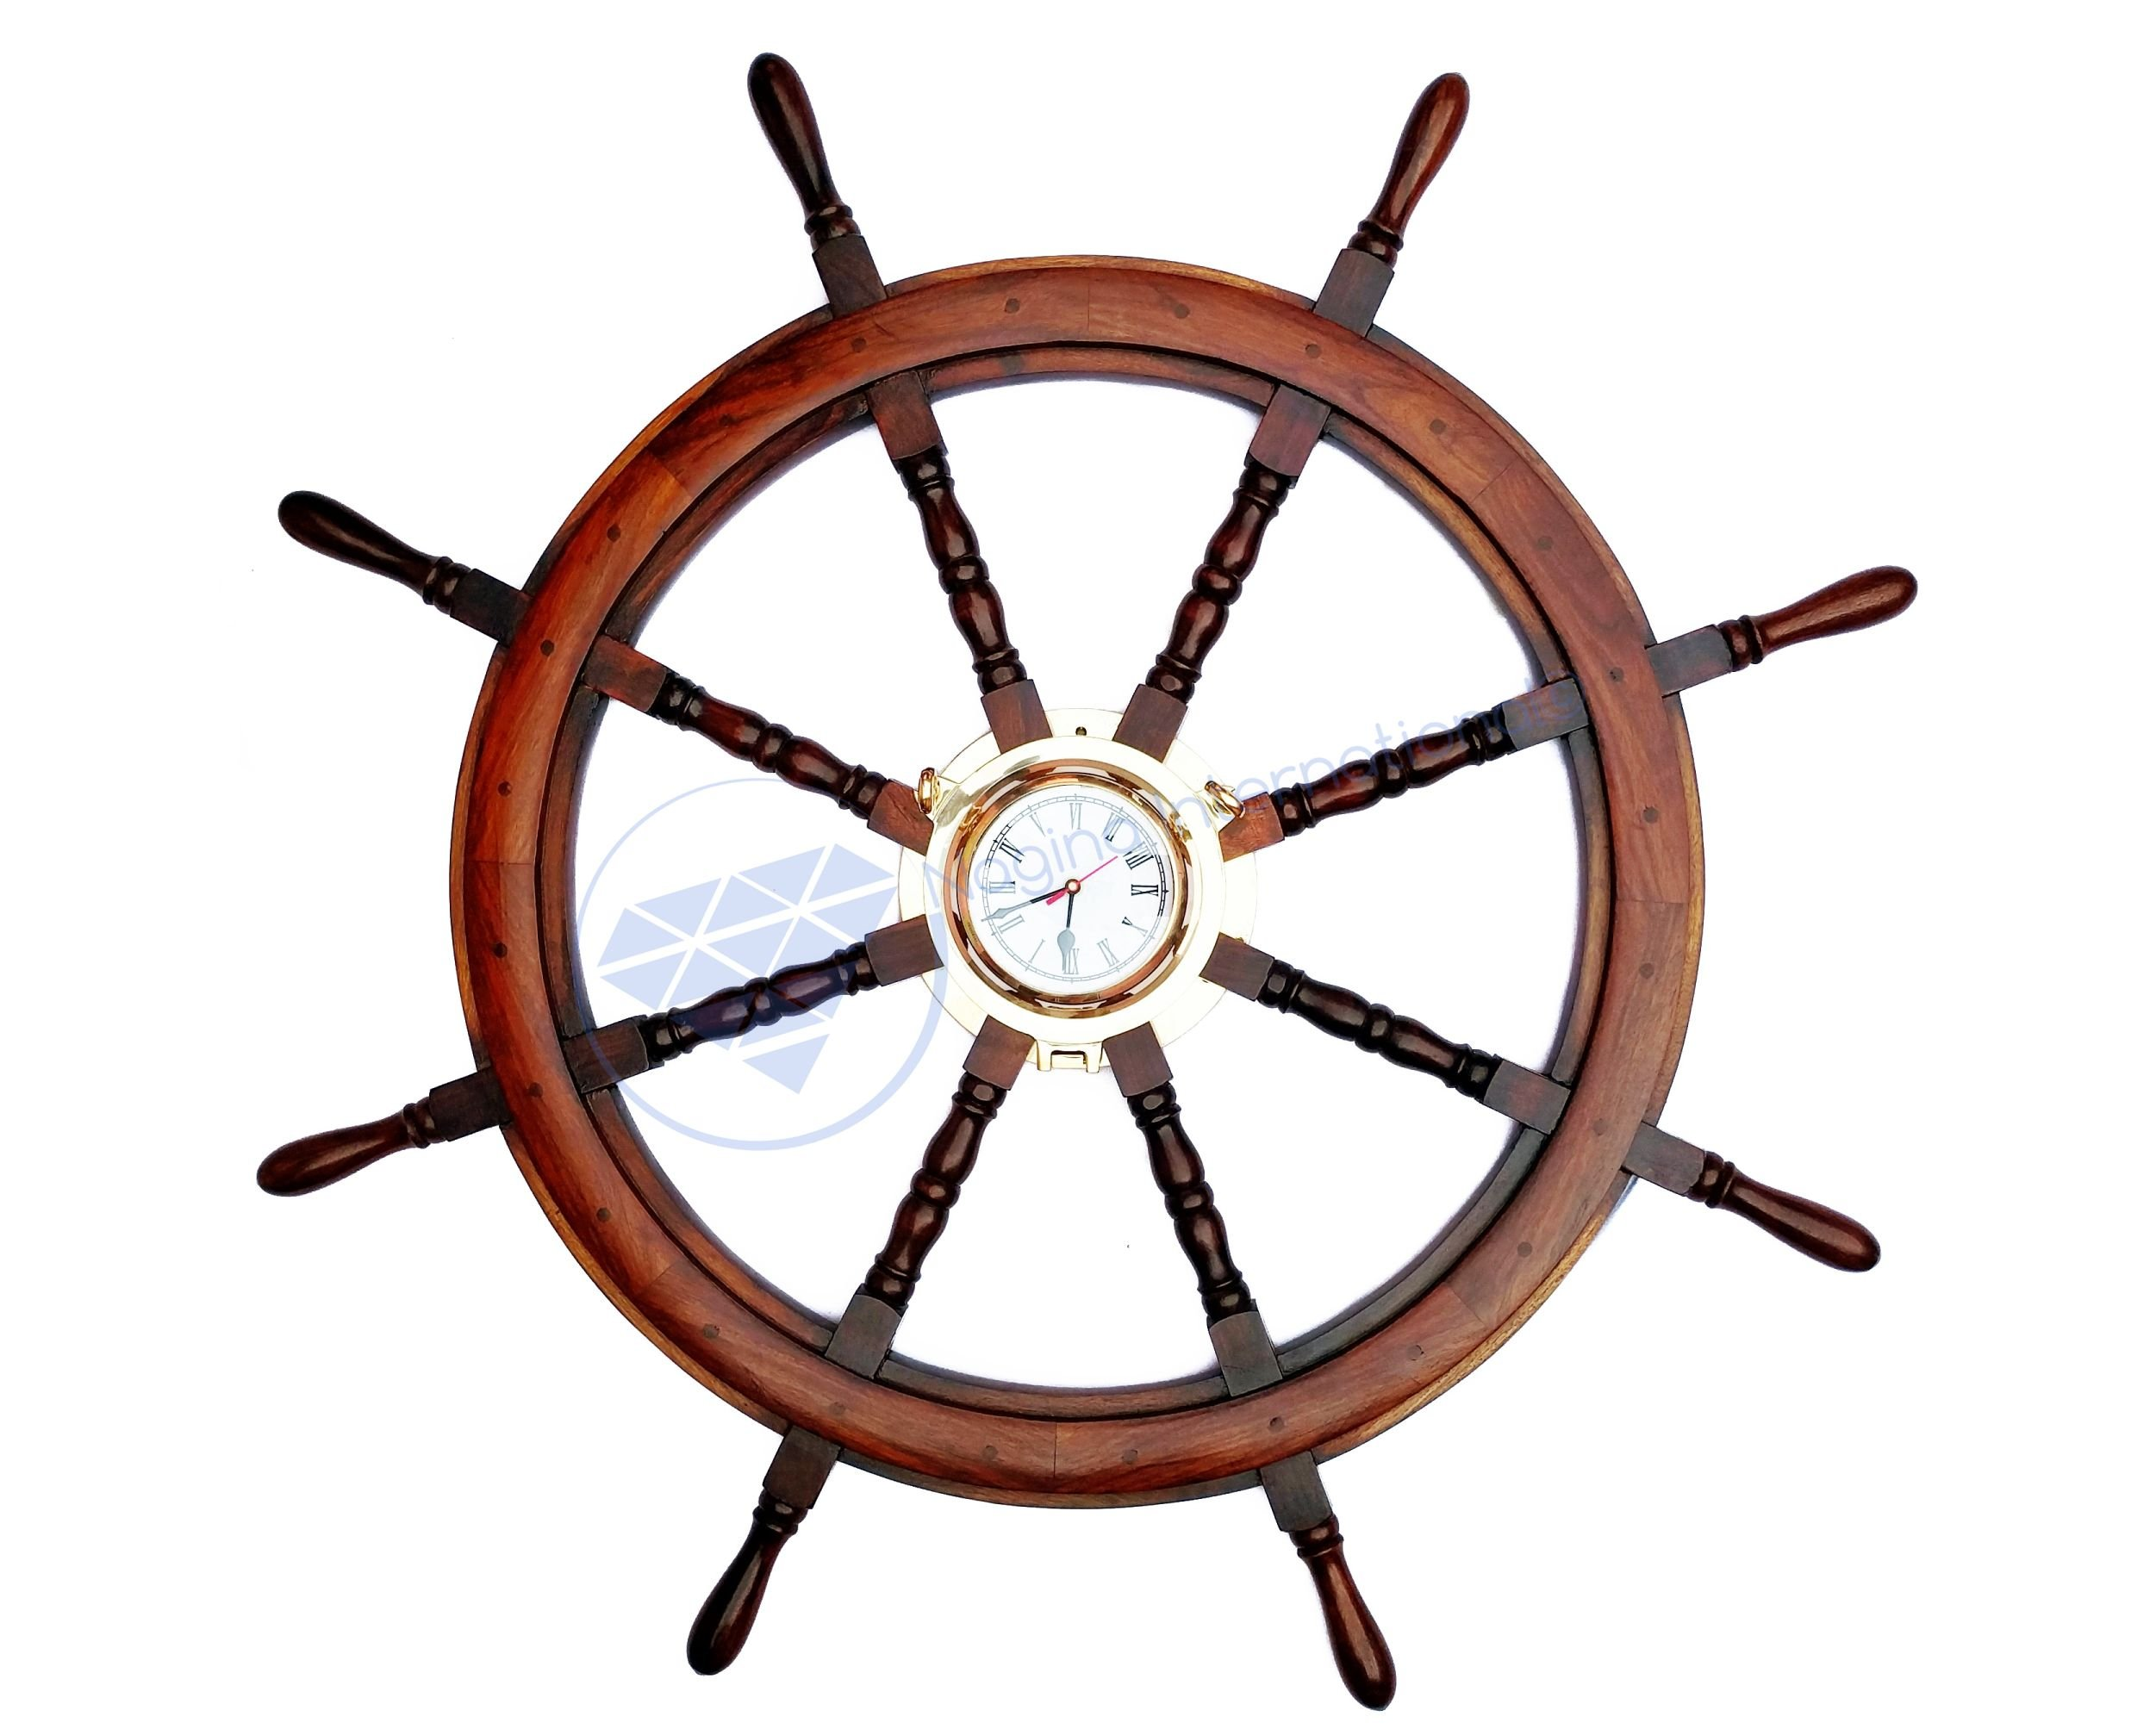 42'' Polystone Finish Large Pirate's Nautical Ship Wheel With Heavy Brass Porthole Time's Clock | Maritime Ocean Navigational Decor Gift | Nagina International